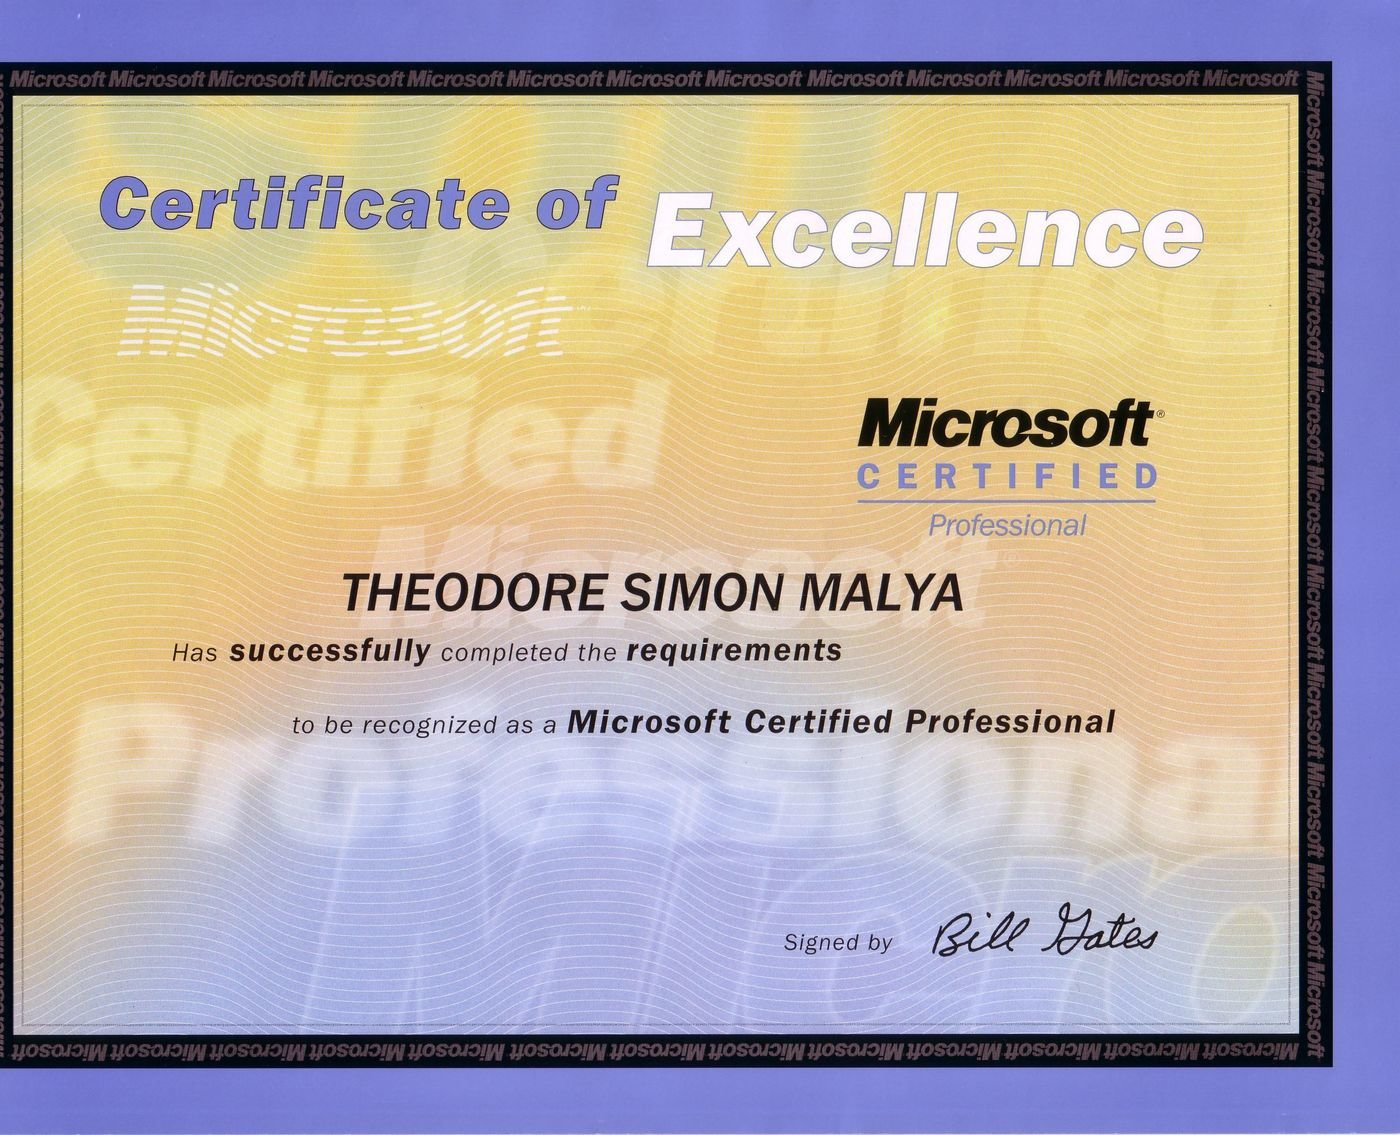 Euro cv and academic qualifications by theodore simon malya at certificate of excellence microsoft member of microsoft certified professionals xflitez Gallery